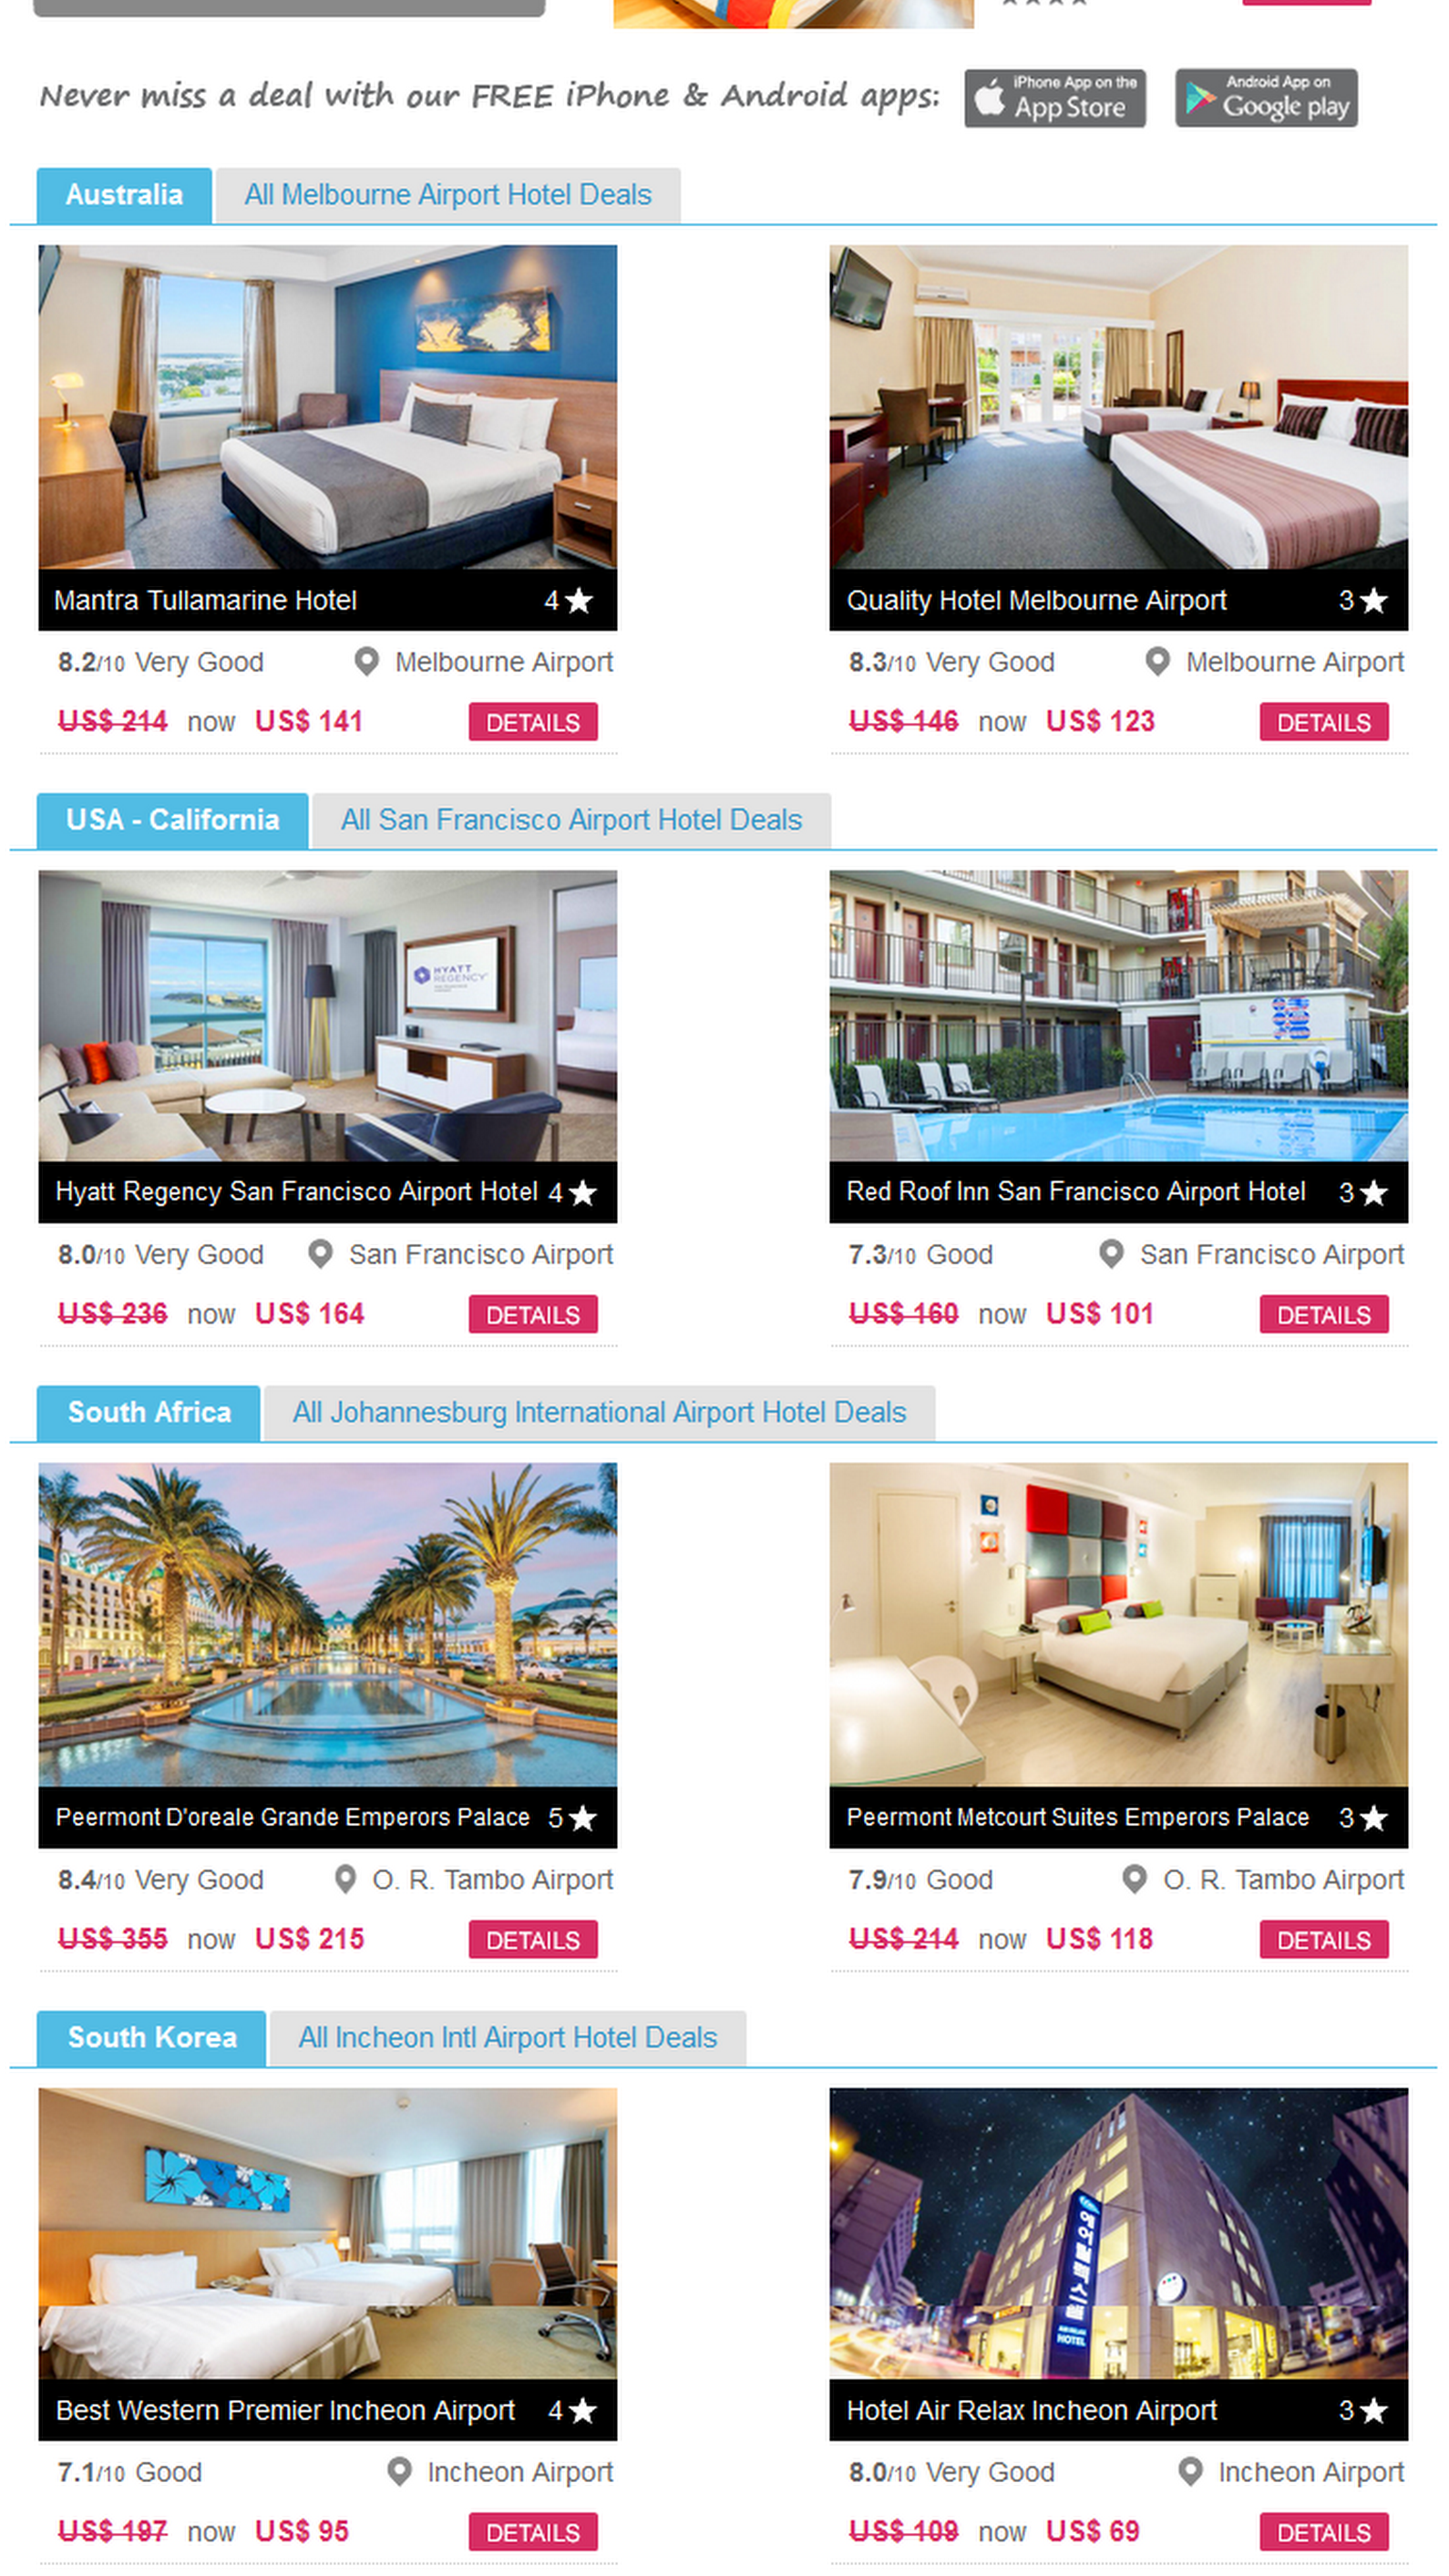 Pin by Mary Hurand on Fun places Hotel deals, Airport